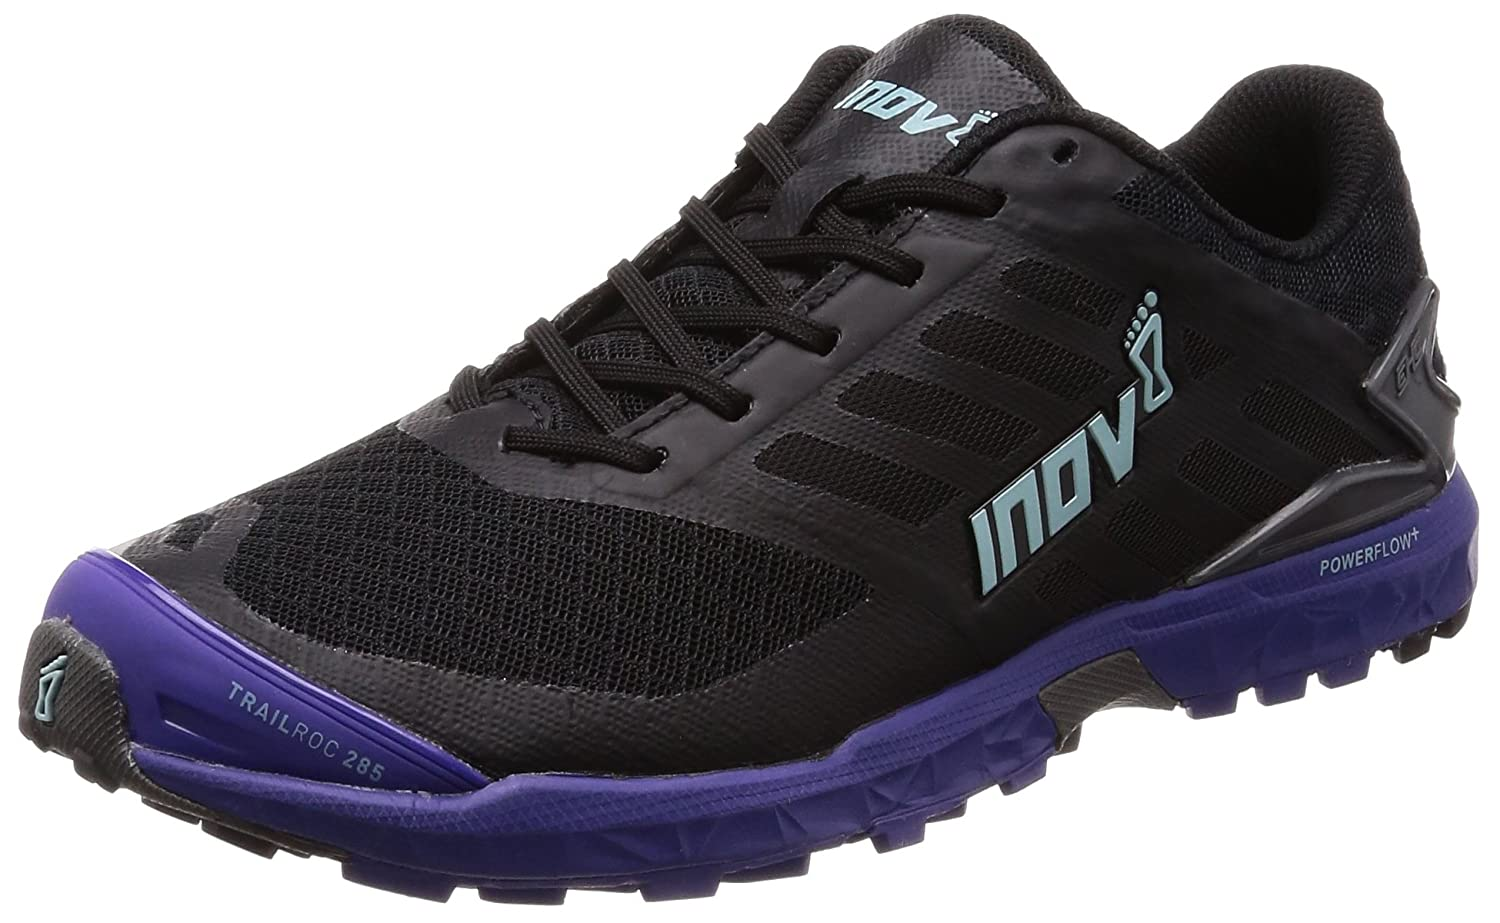 Inov-8 Women's Trailroc 285 Running Shoe B01N5VD9B8 8.5 B(M) US|Black/Purple/Blue